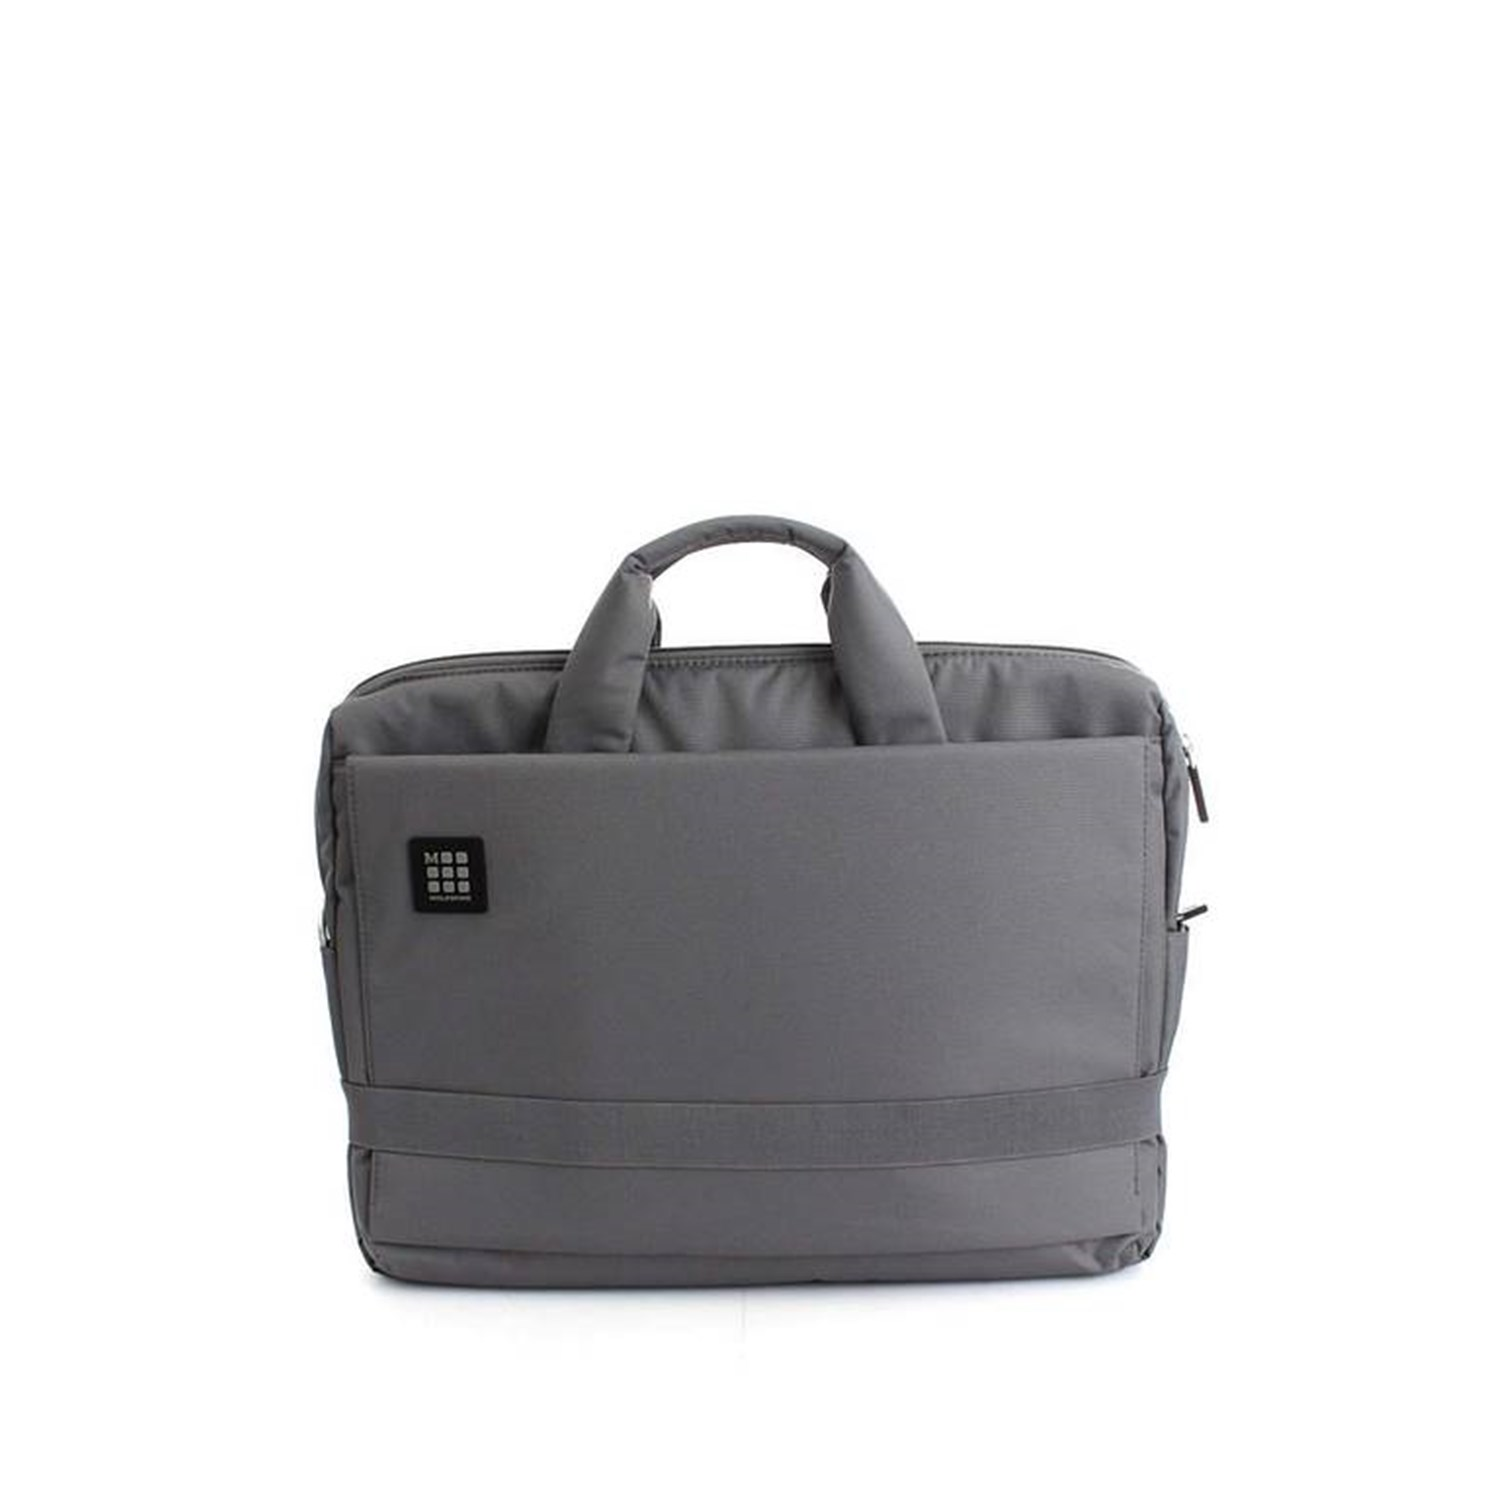 Moleskine Bags Accessories To work GREY 2855006